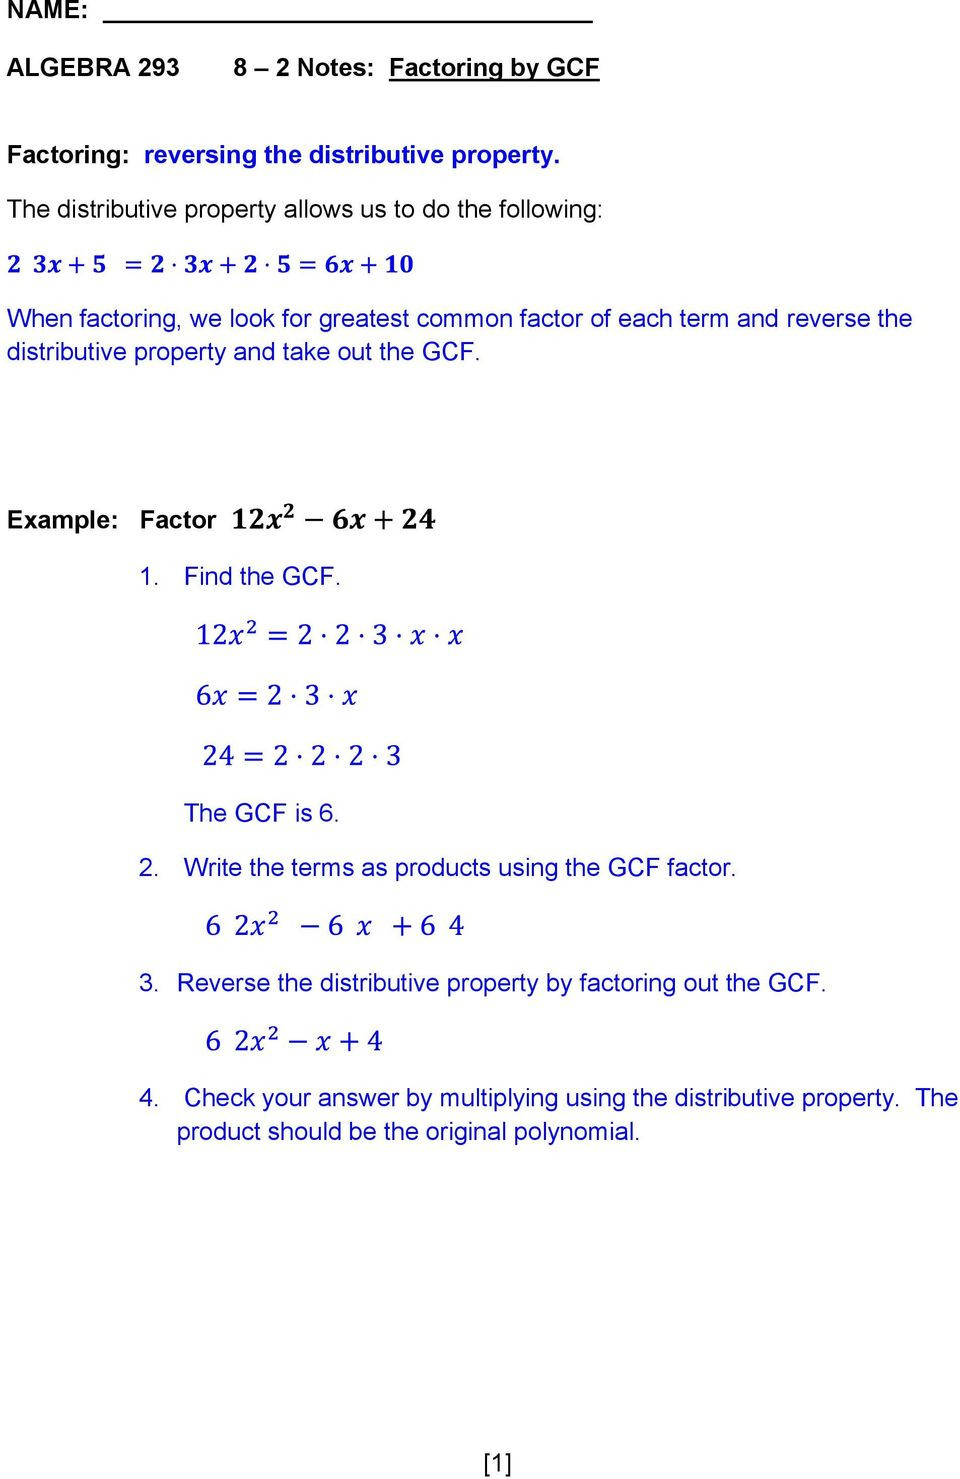 Factoring Distributive Property Worksheet when Factoring We Look for Greatest Mon Factor Of Each